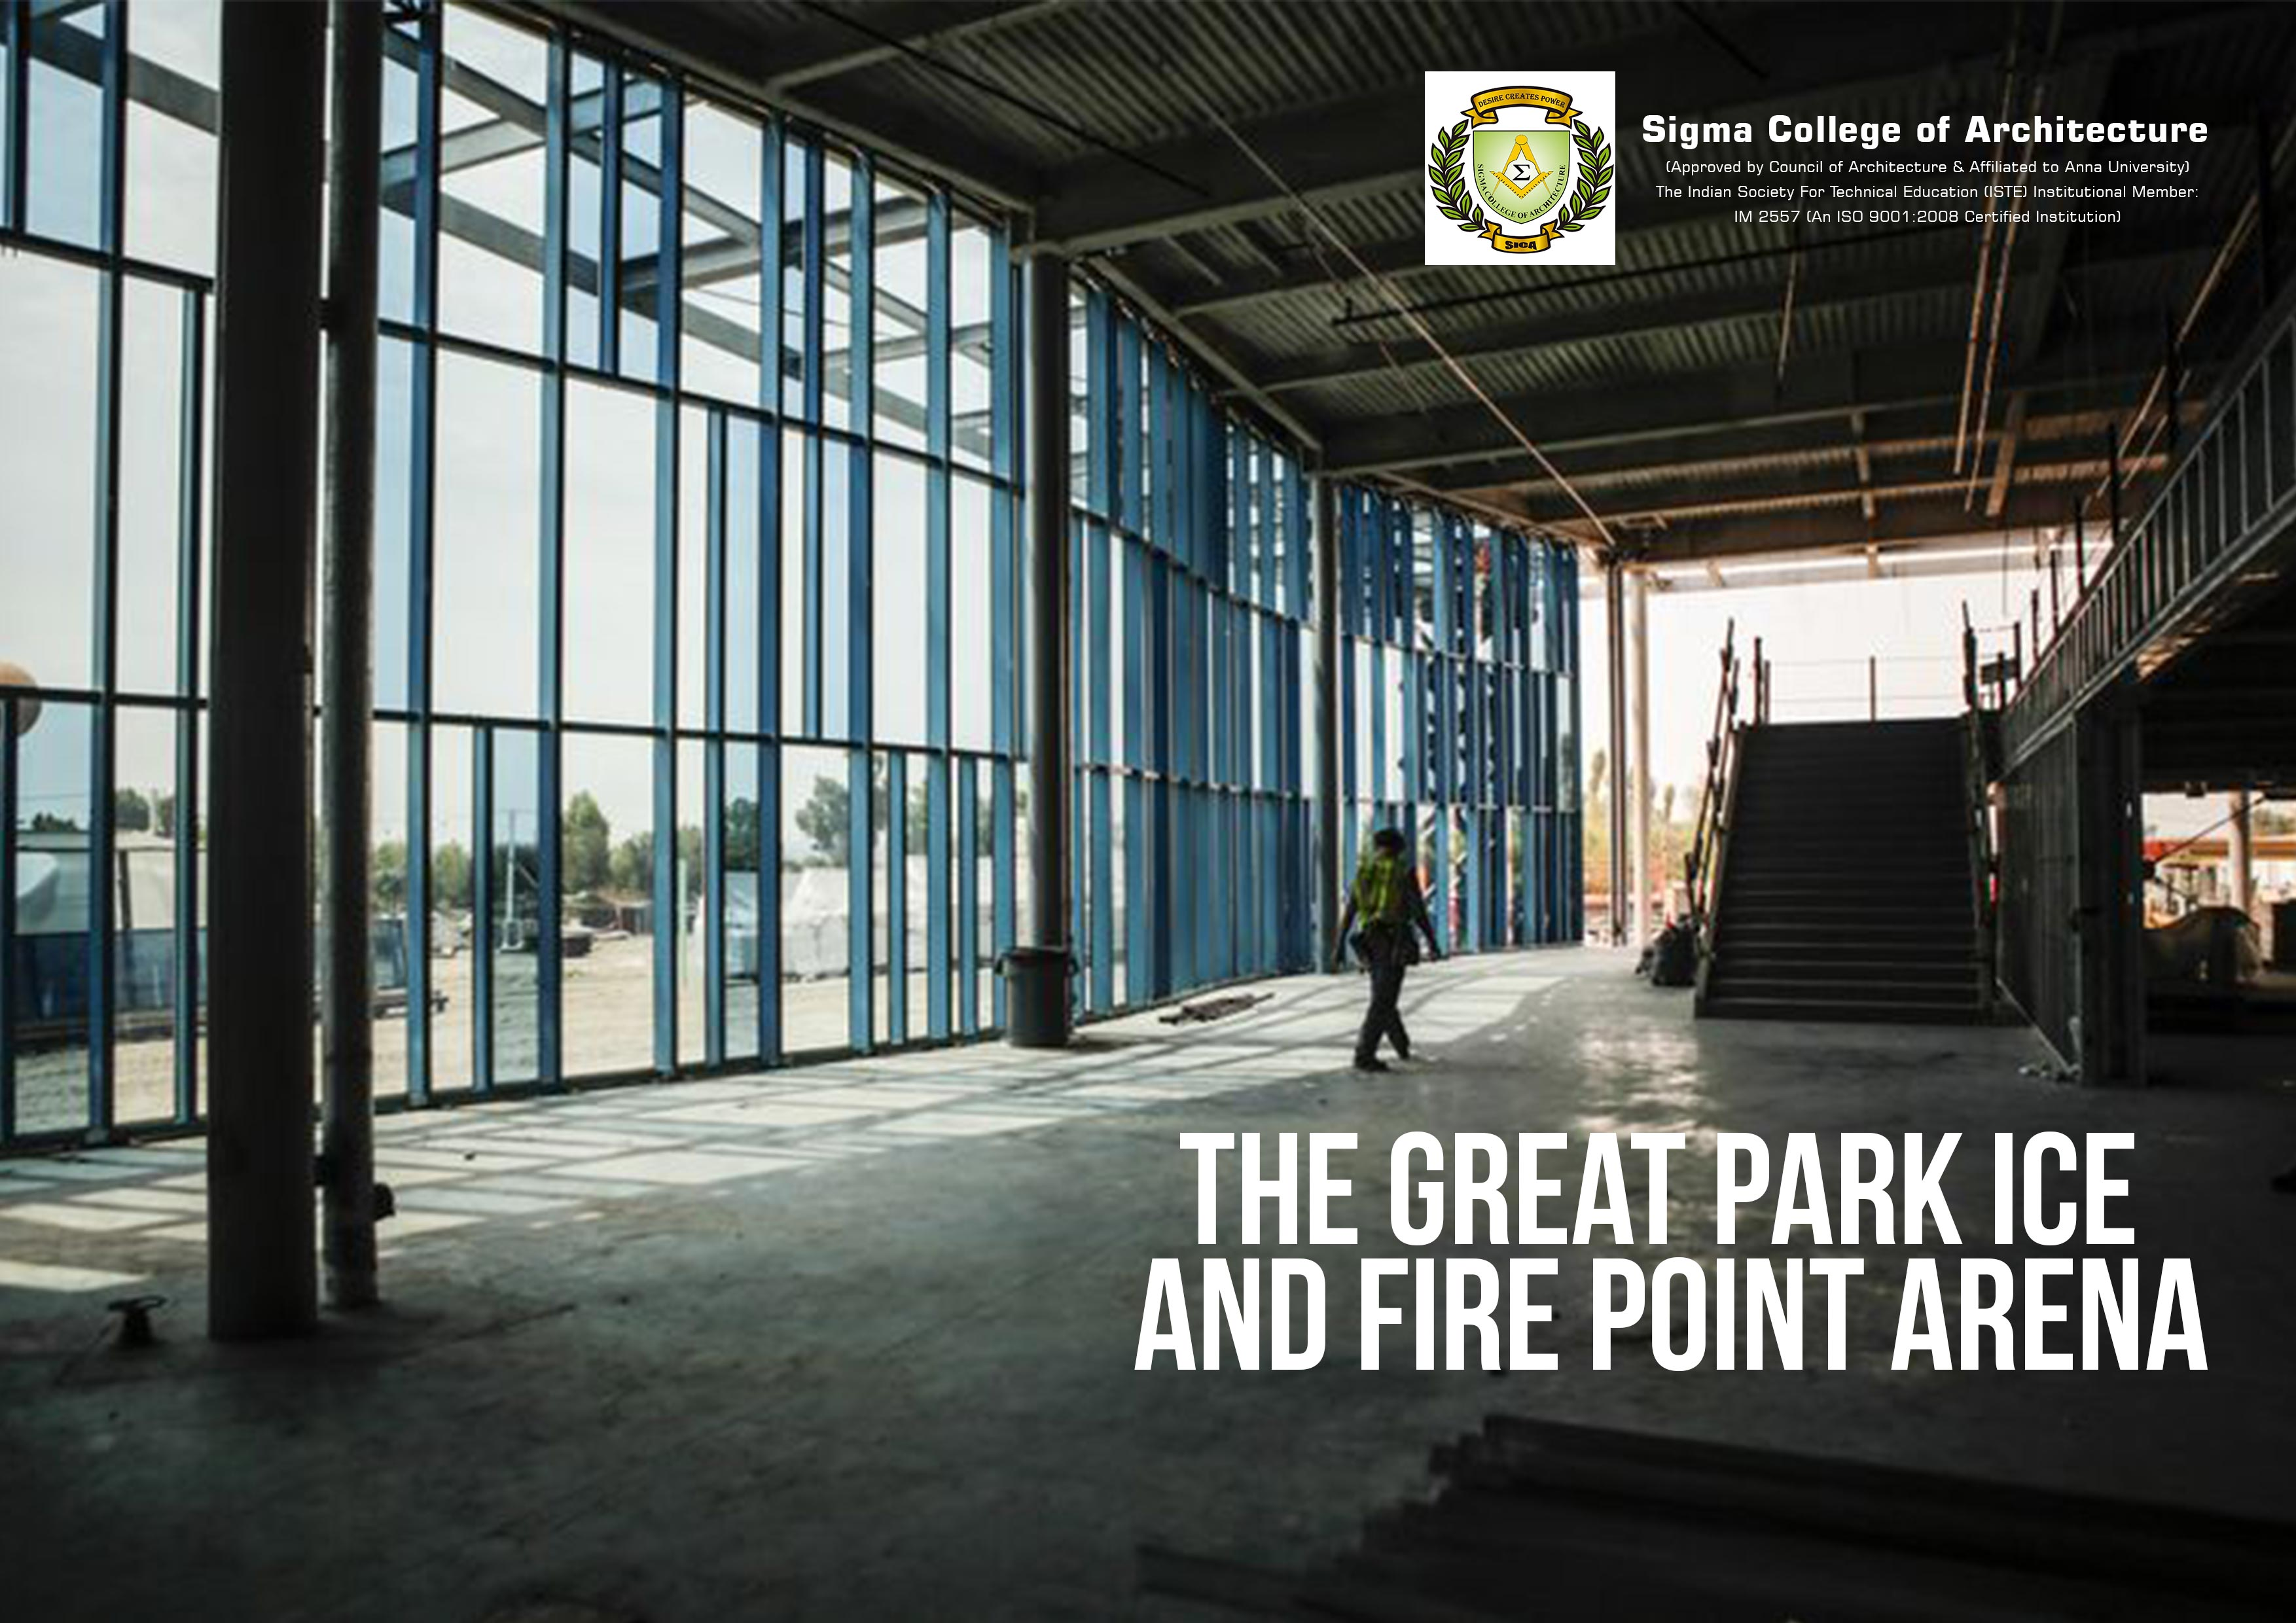 The Great Park Ice and Fire Point Arena